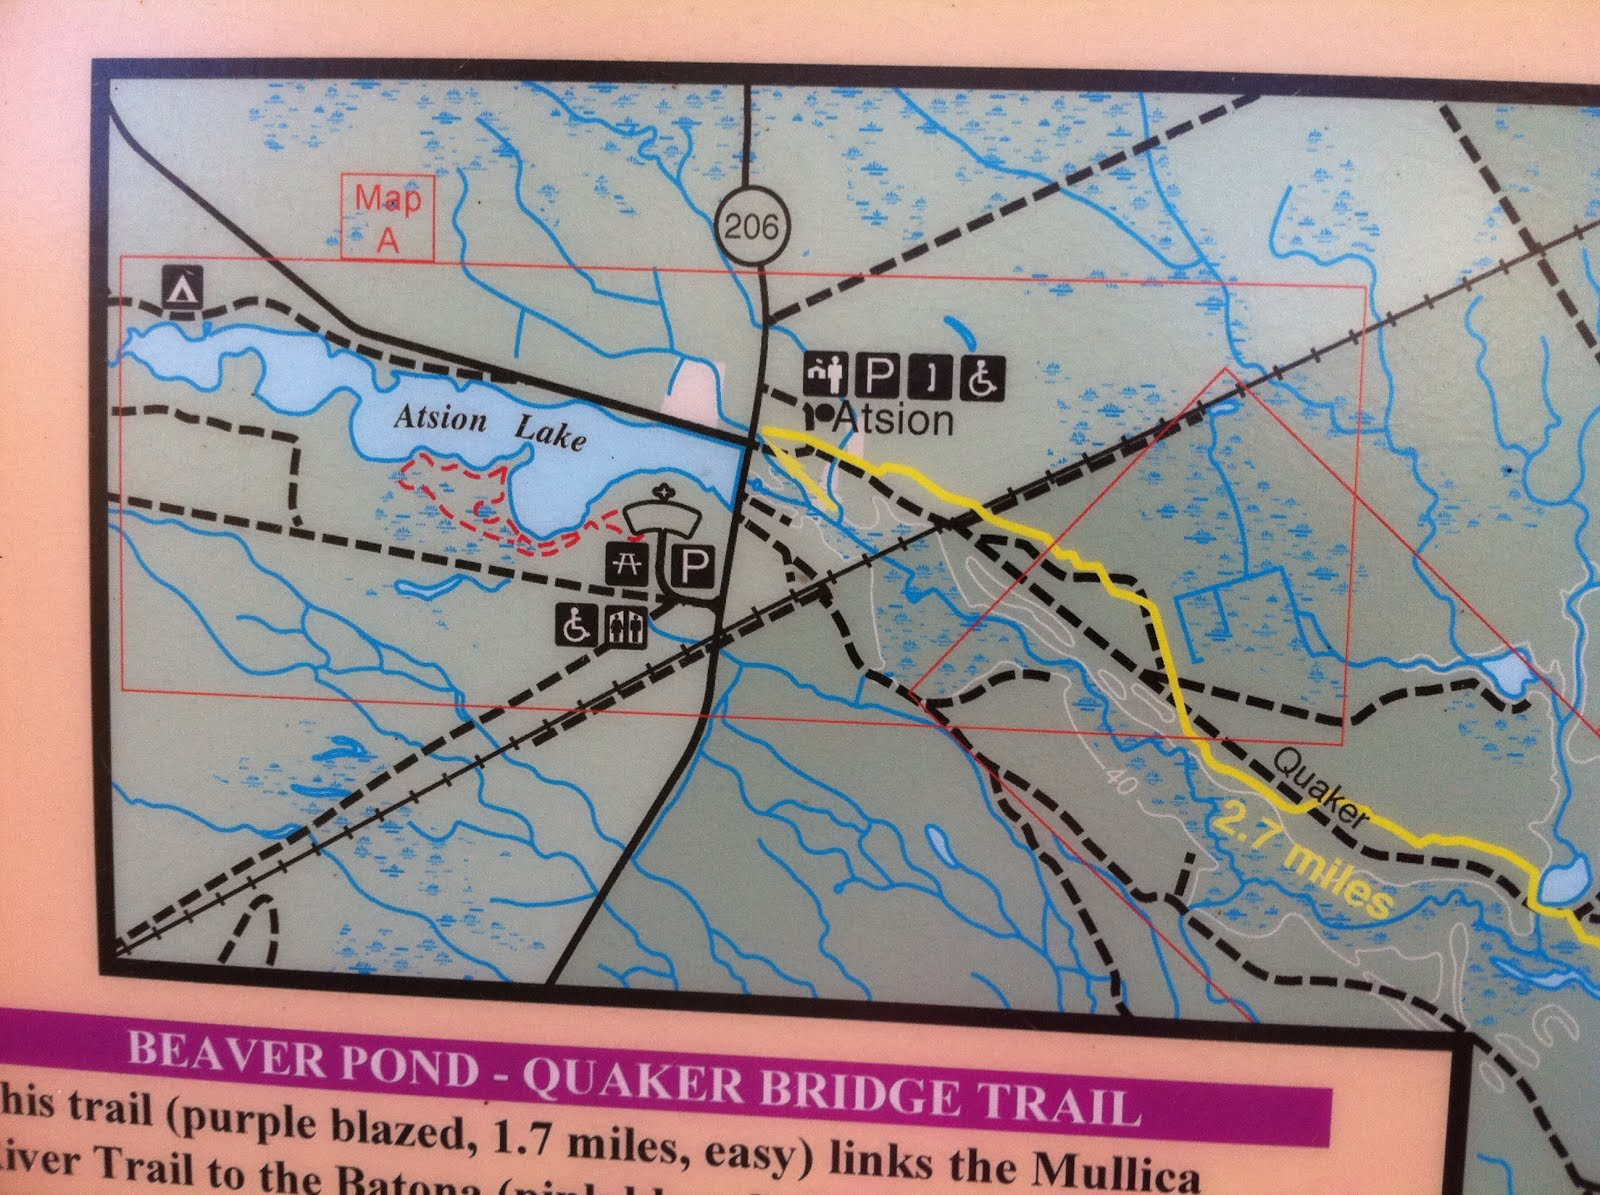 trailhead for yellow blazed trail. agile trekker mullica river trail to beaver pond wharton state